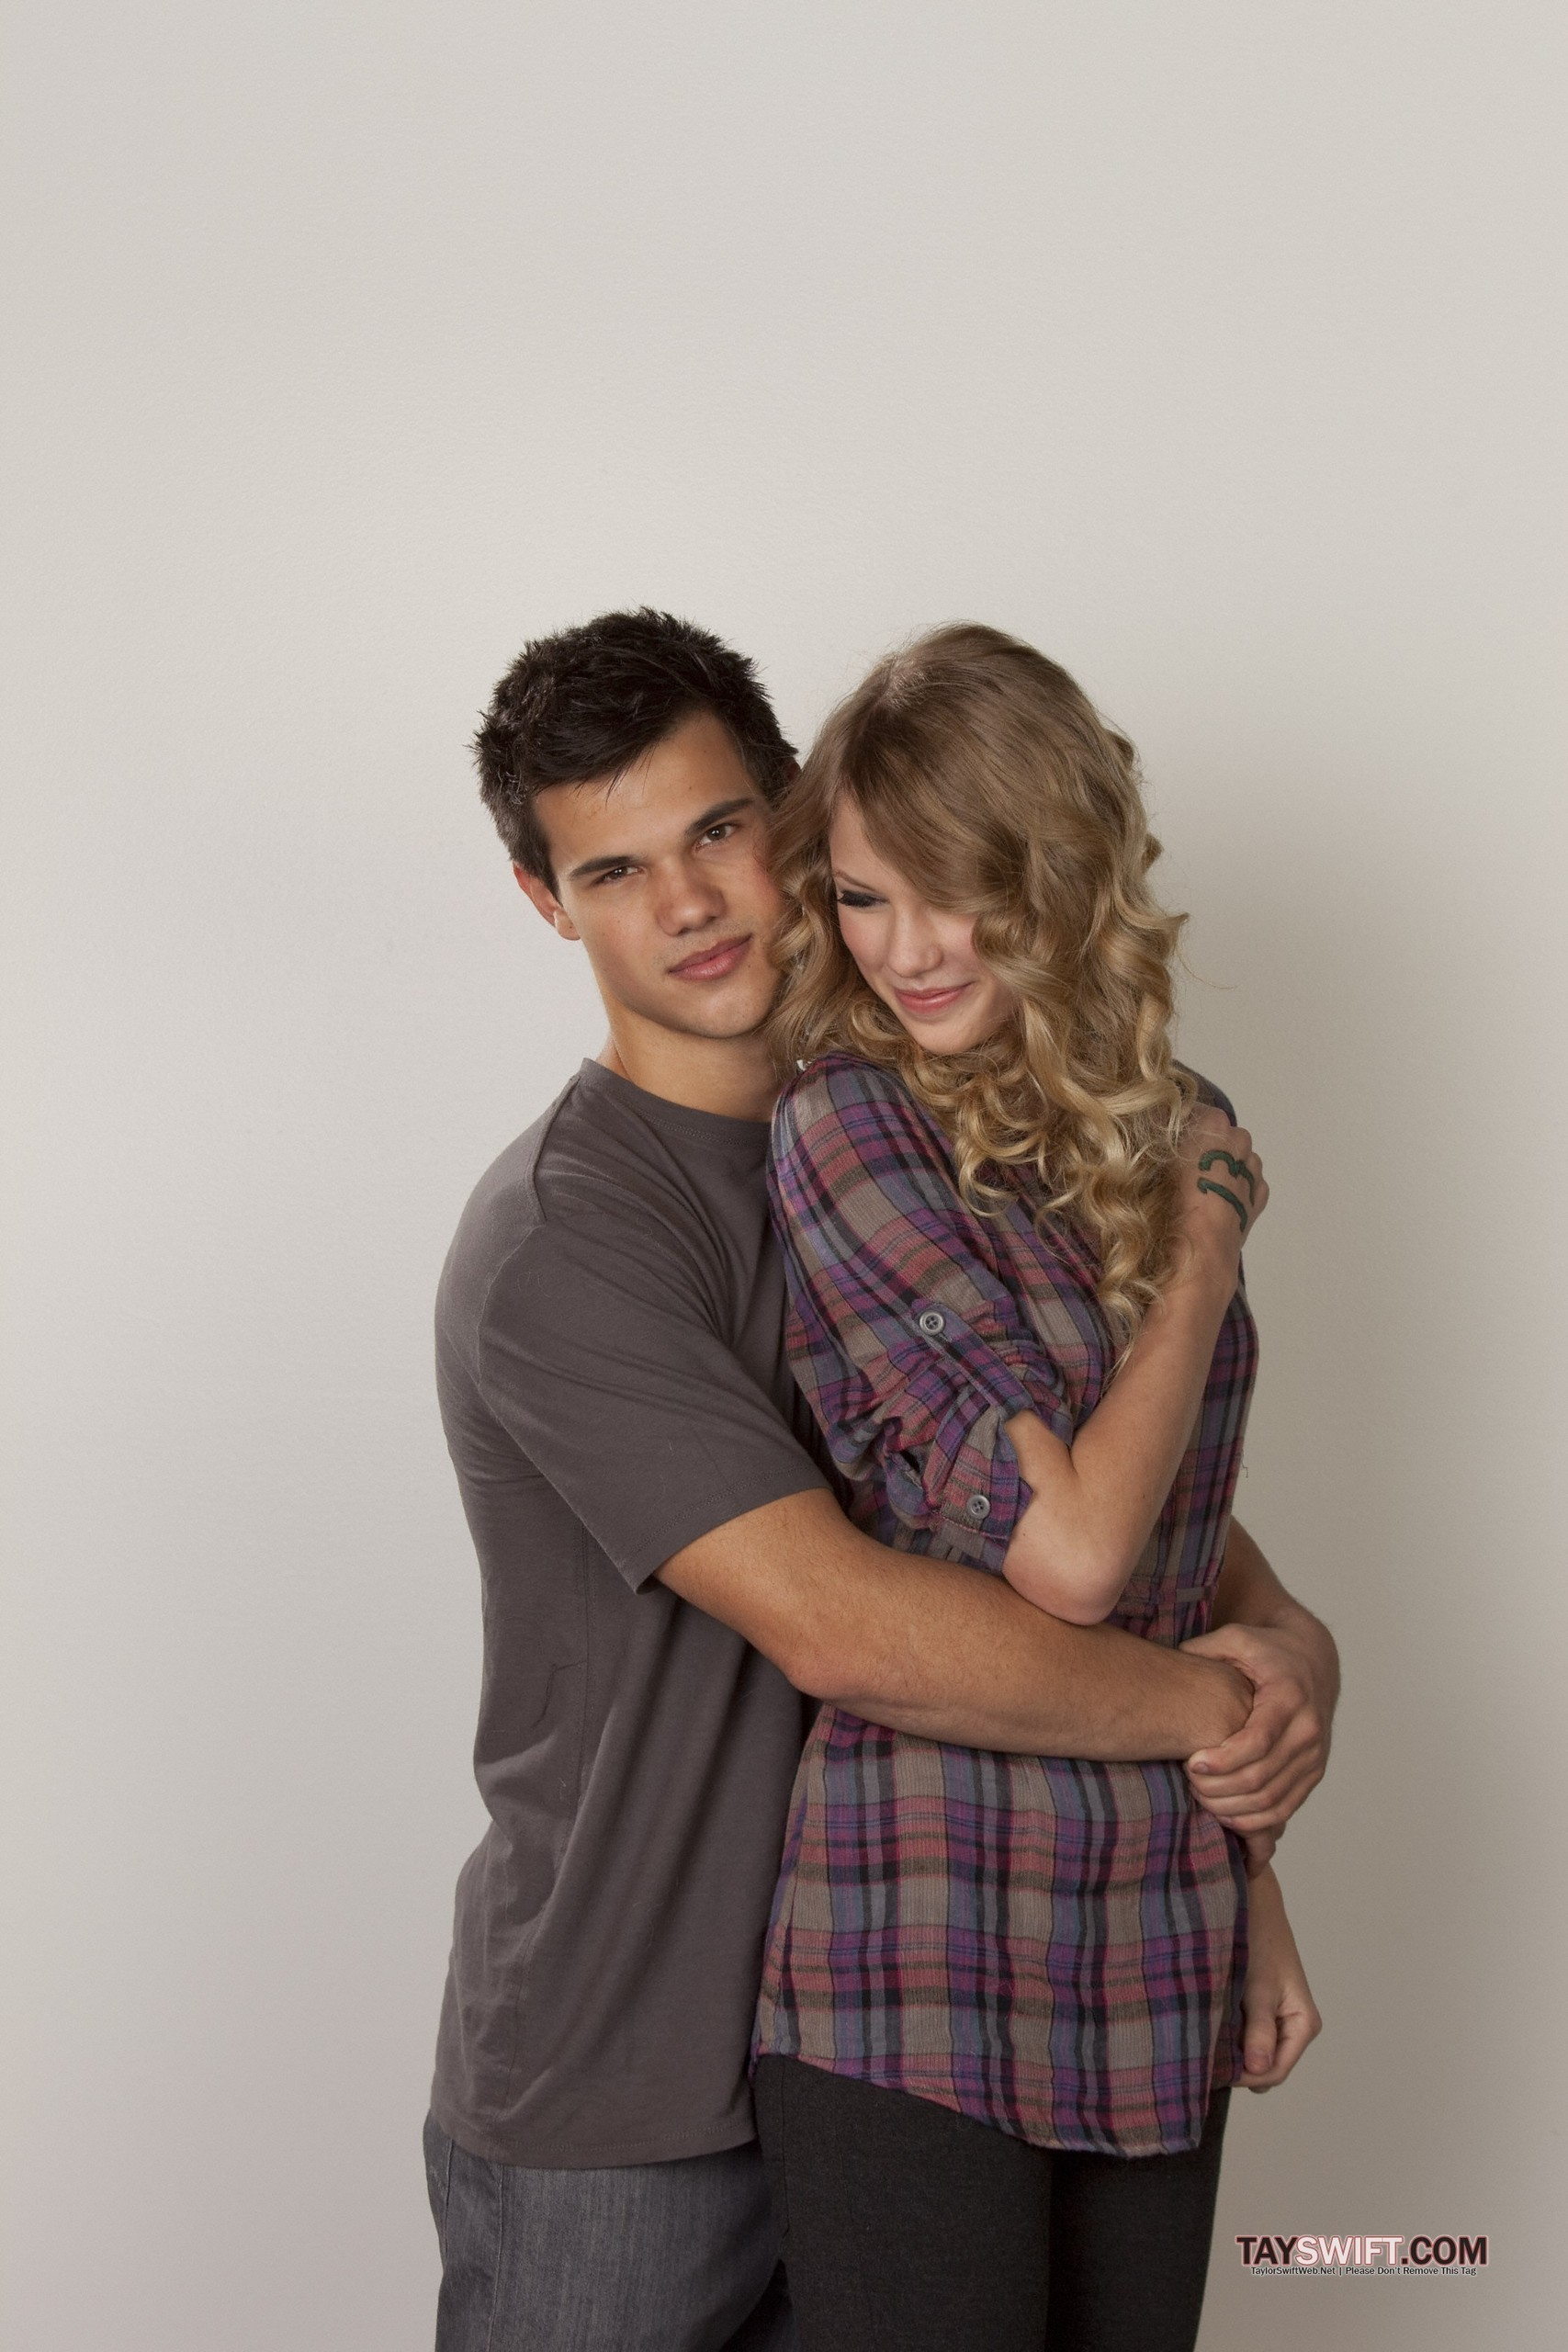 Anichu90 Images Taylor Swift Valentine S Day Promoshoot